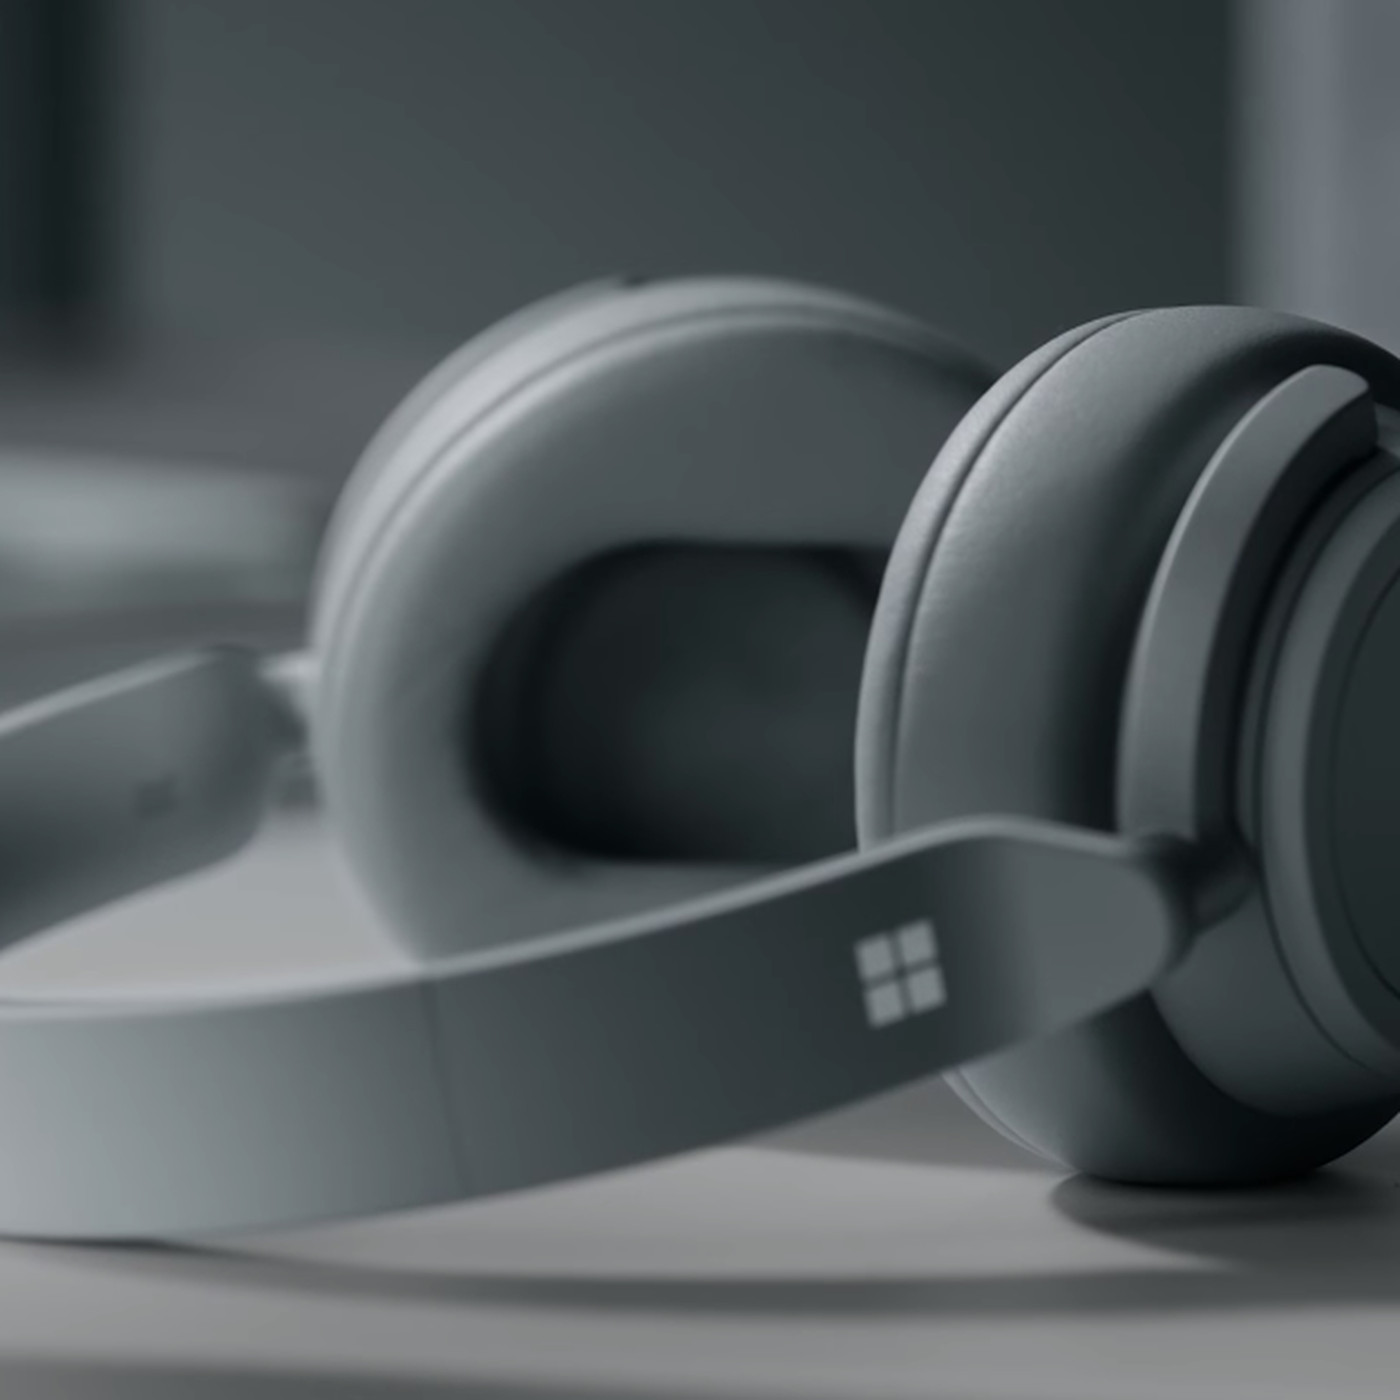 a0b70b86037 Microsoft announces noise-canceling Surface Headphones - The Verge